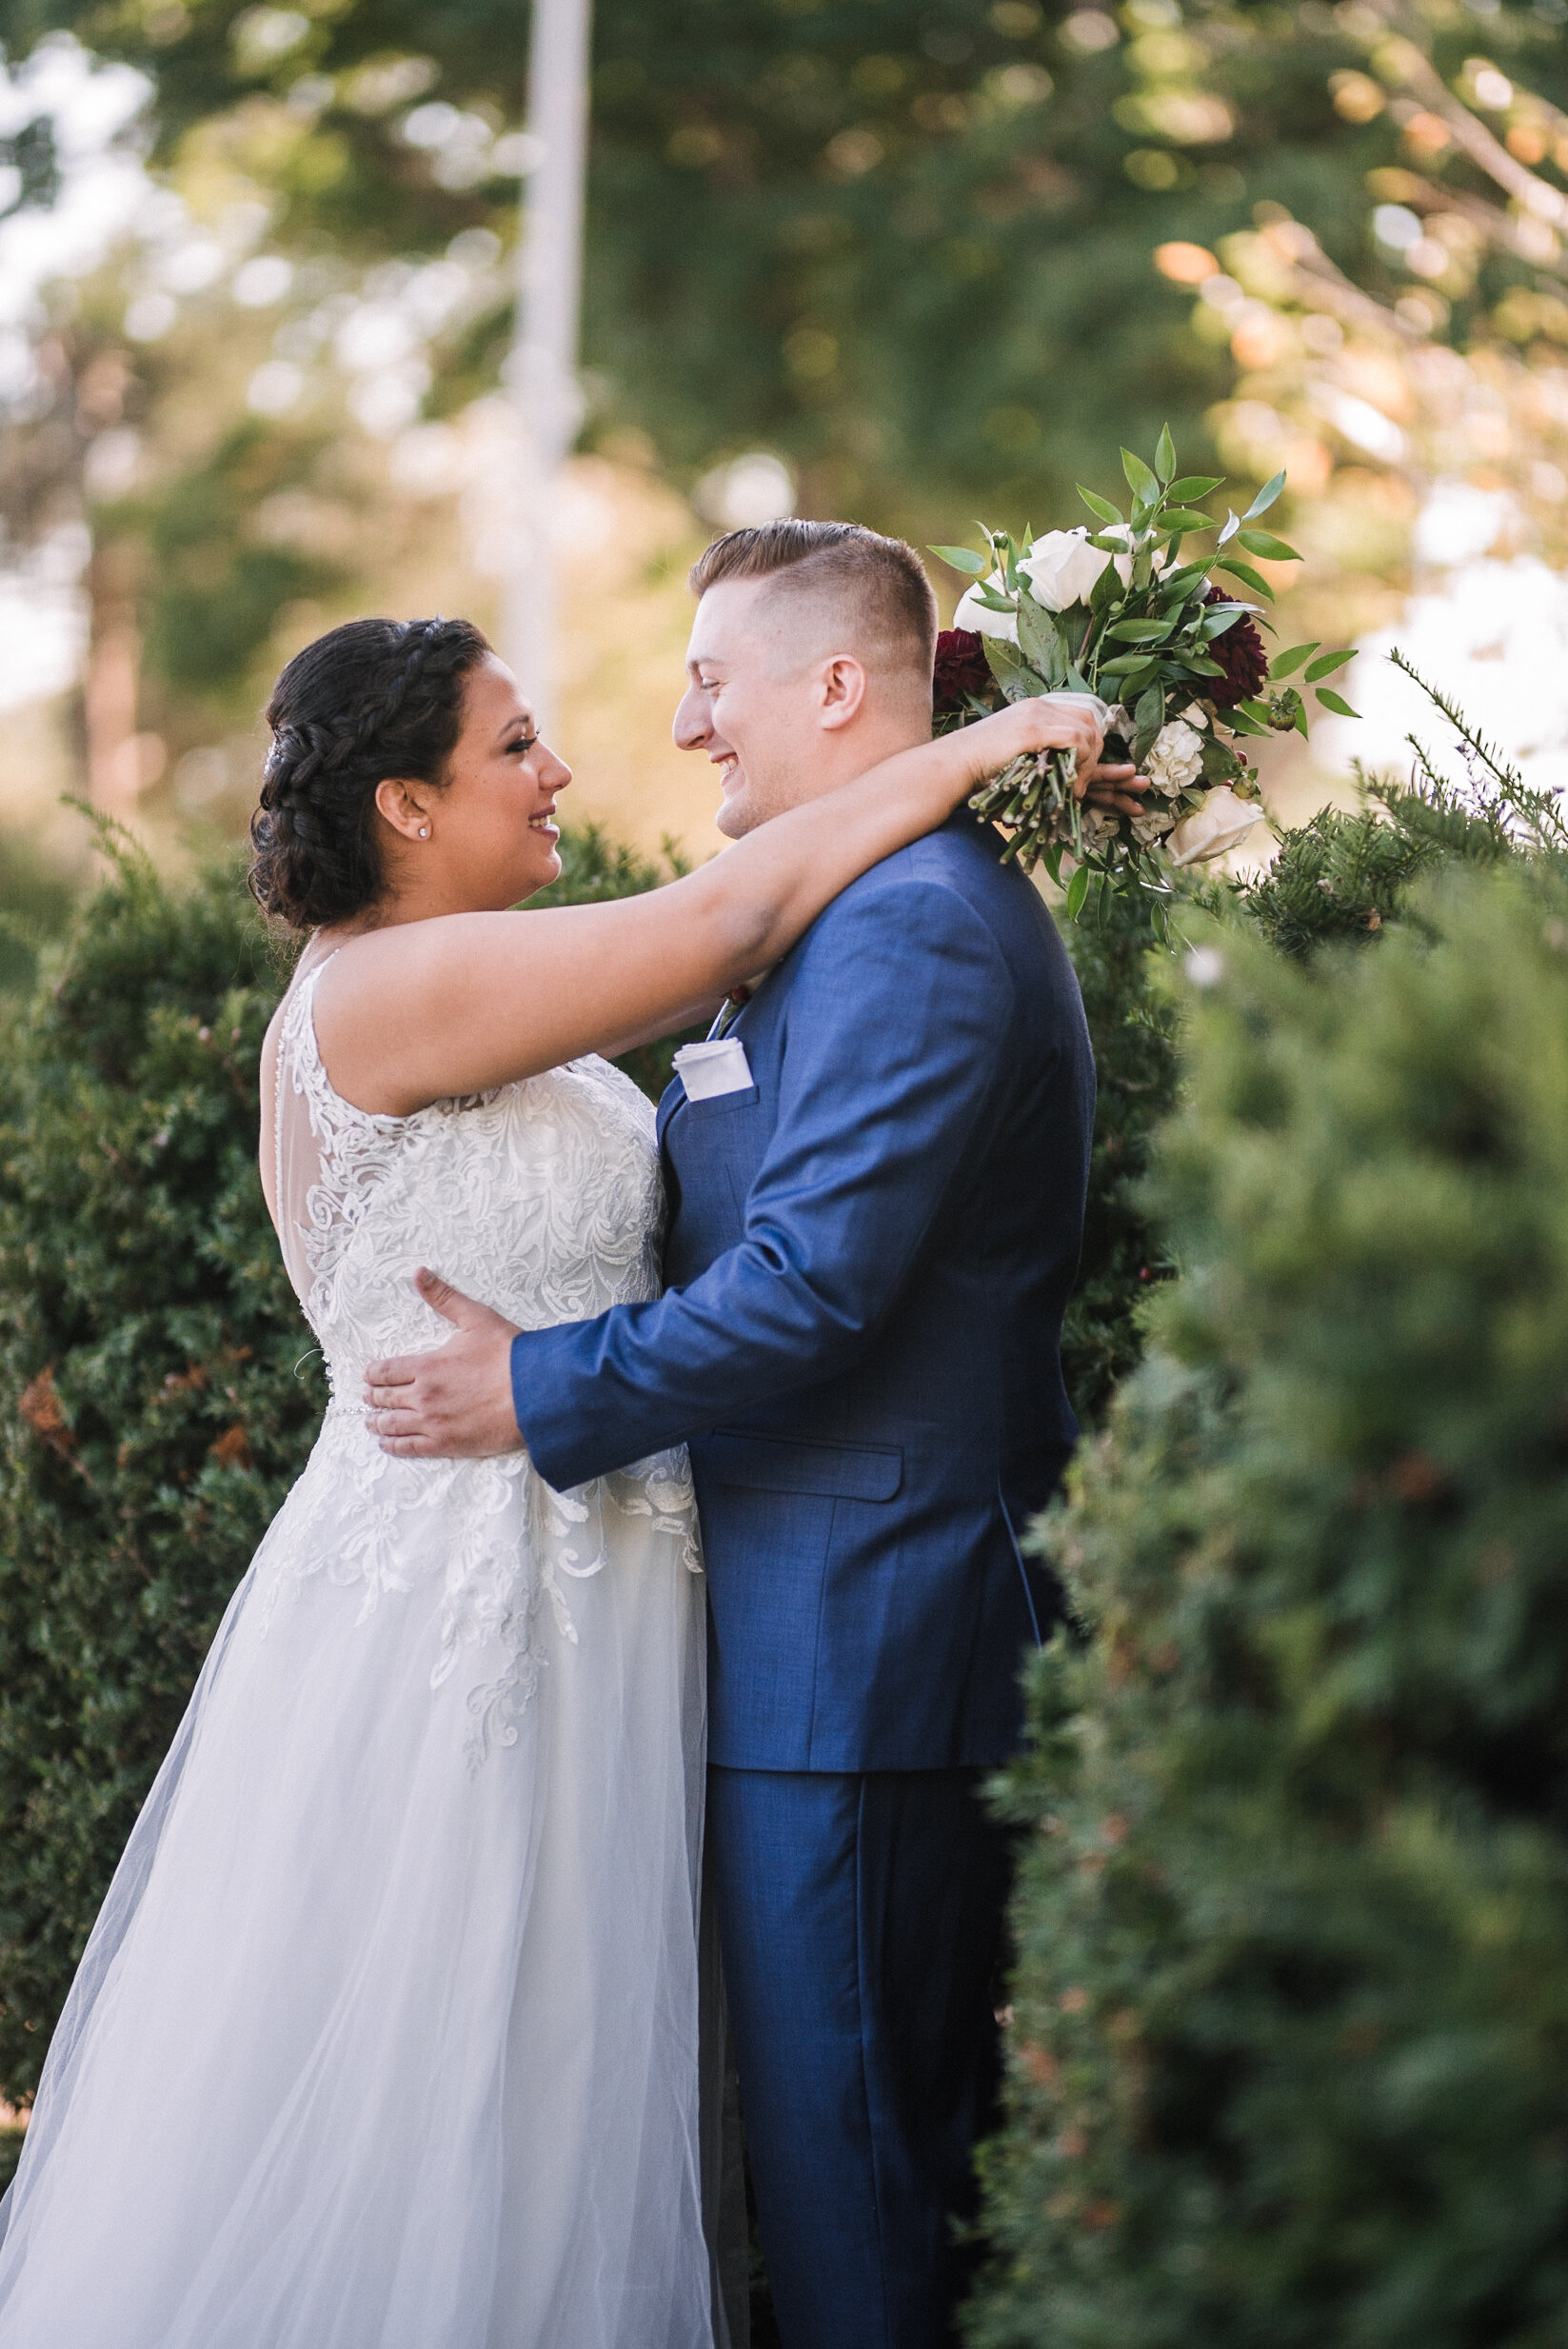 bride and groom embracing at The Inn at Vint Hill